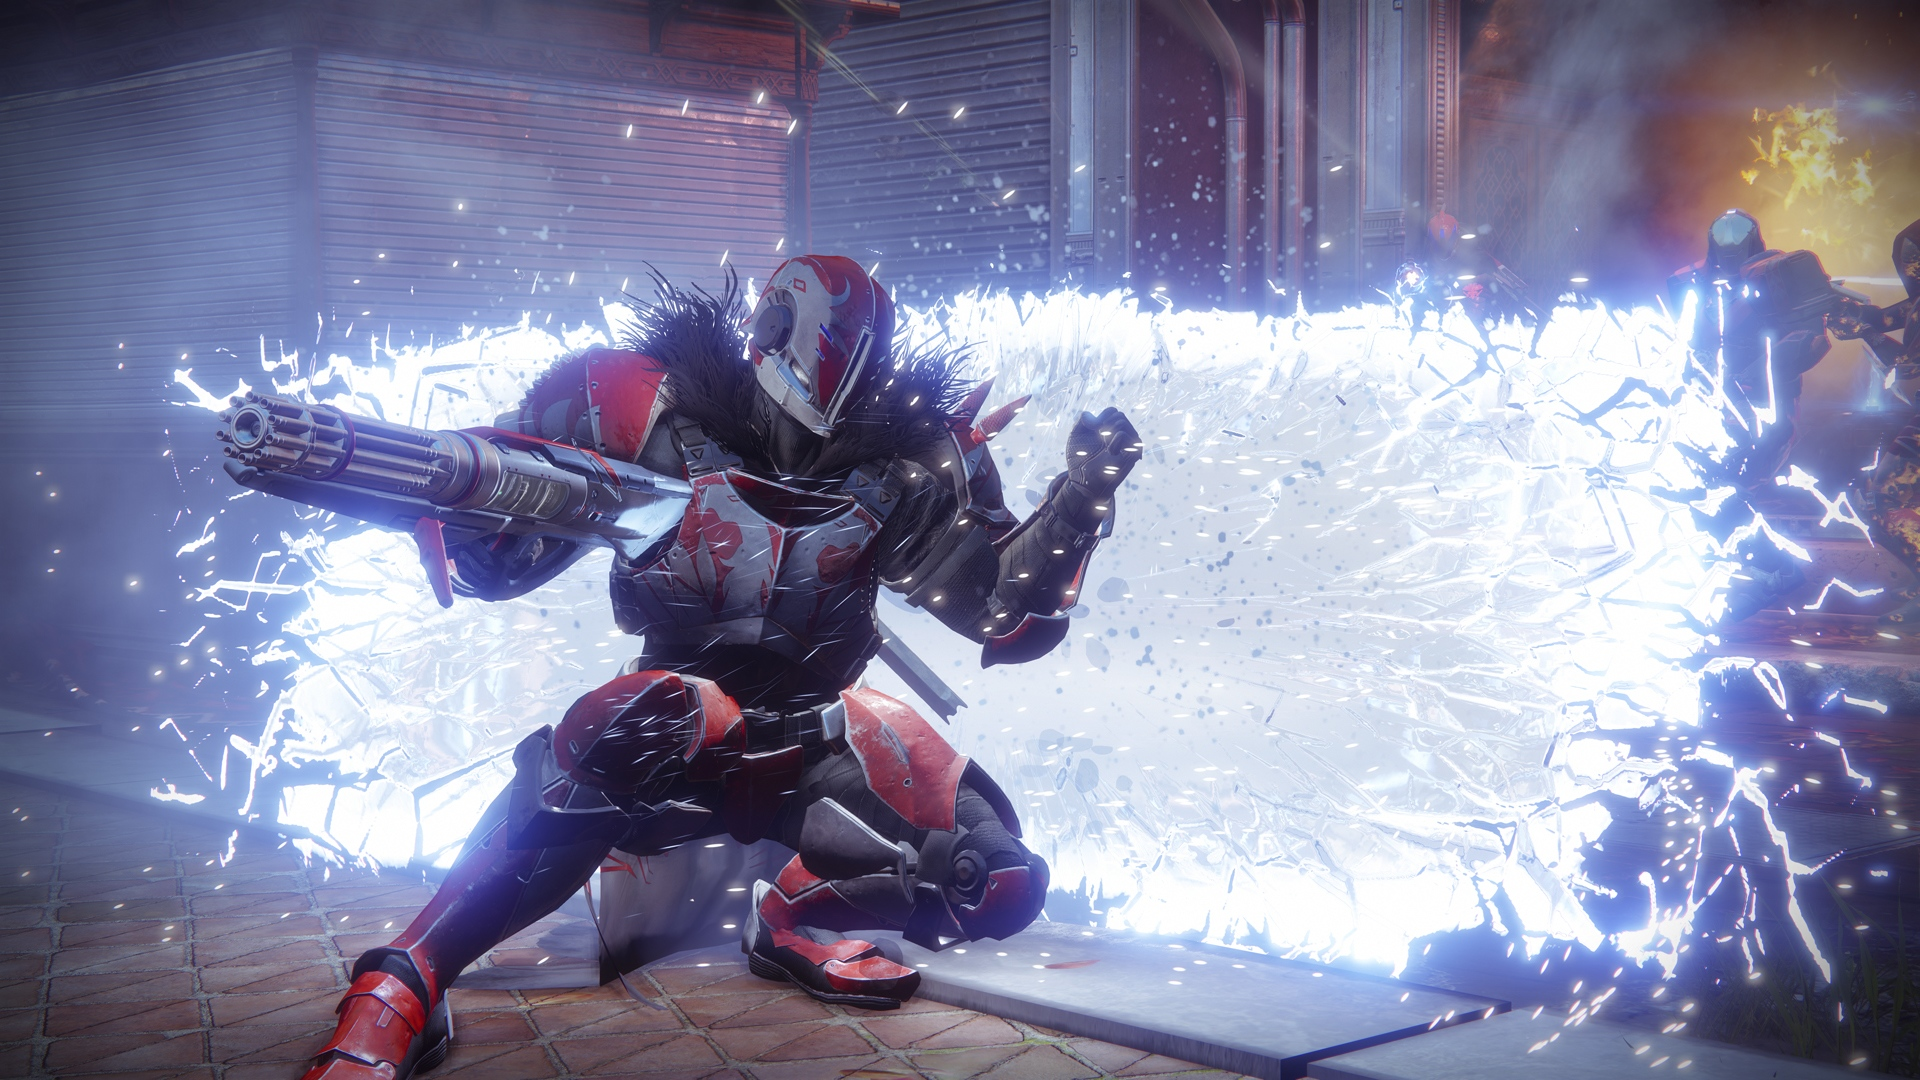 destiny 2 titan widescreen desktop wallpaper 830